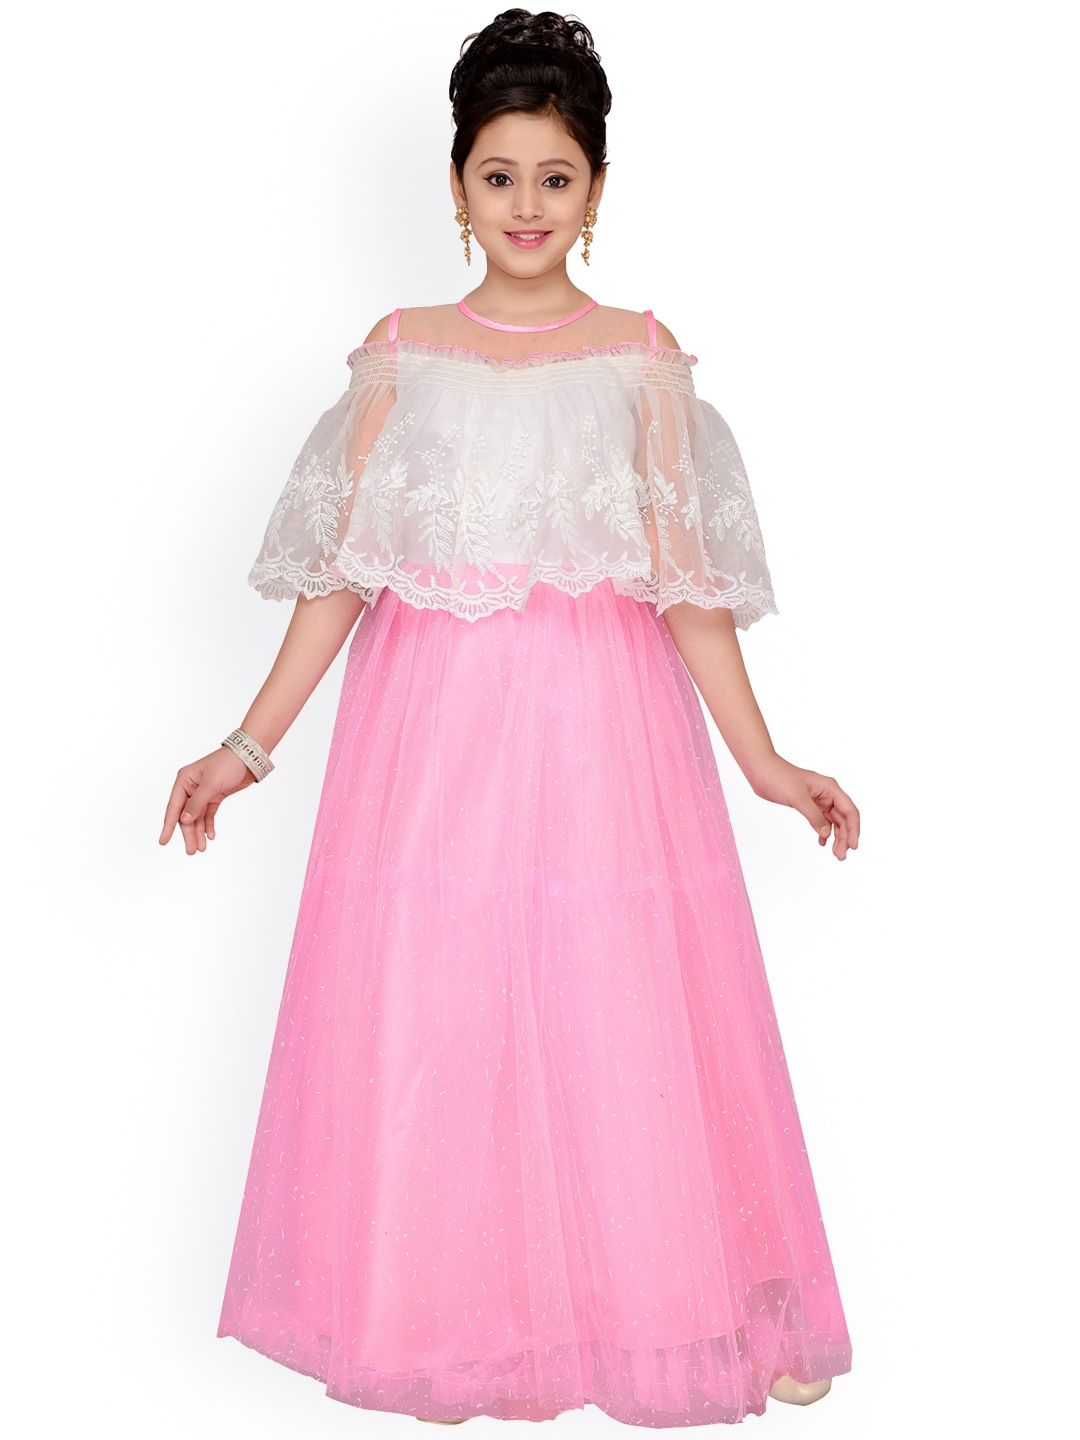 4d31d3f4e17a0 Boys Girls Girls Party Wear Dresses - Buy Boys Girls Girls Party Wear  Dresses online in India